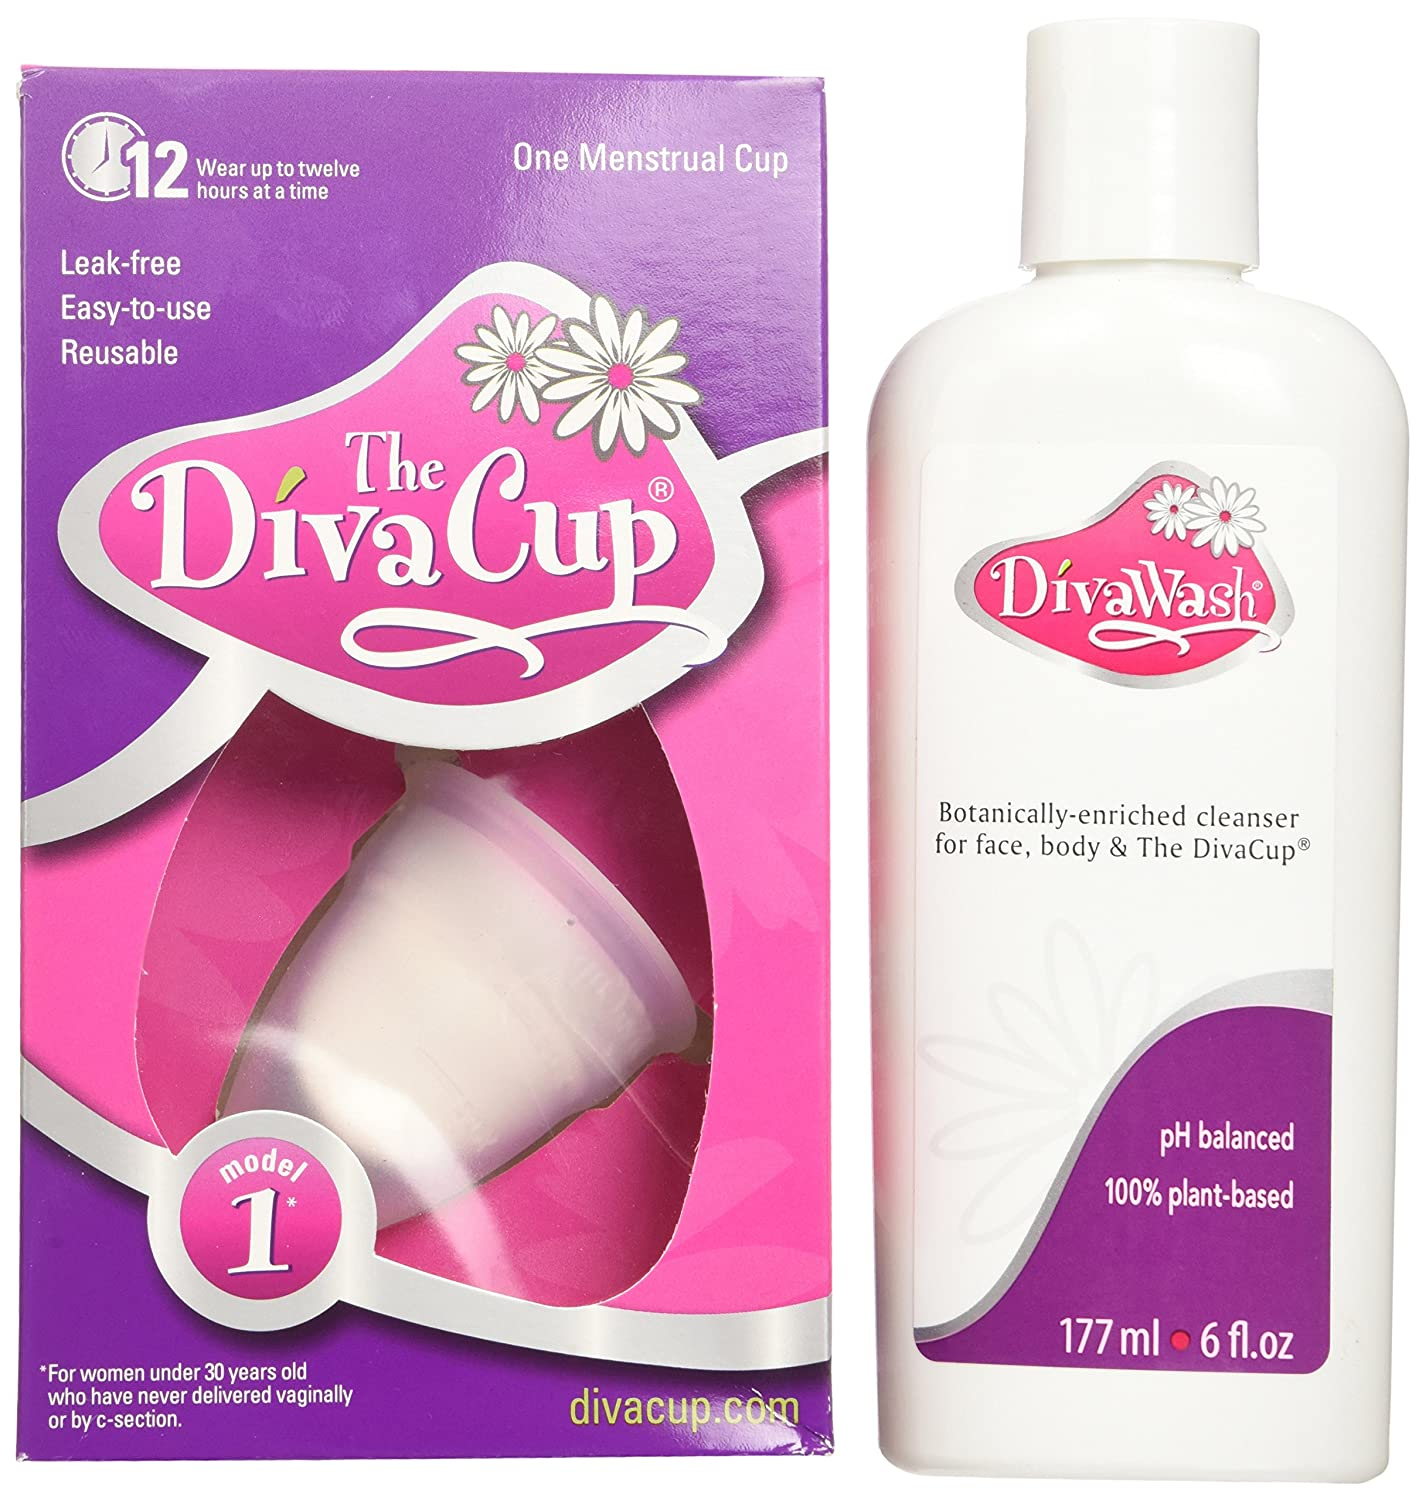 Menstrual Cup Amazoncom Diva Cup Model 1 Pre Childbirth Cups 2 Count Health